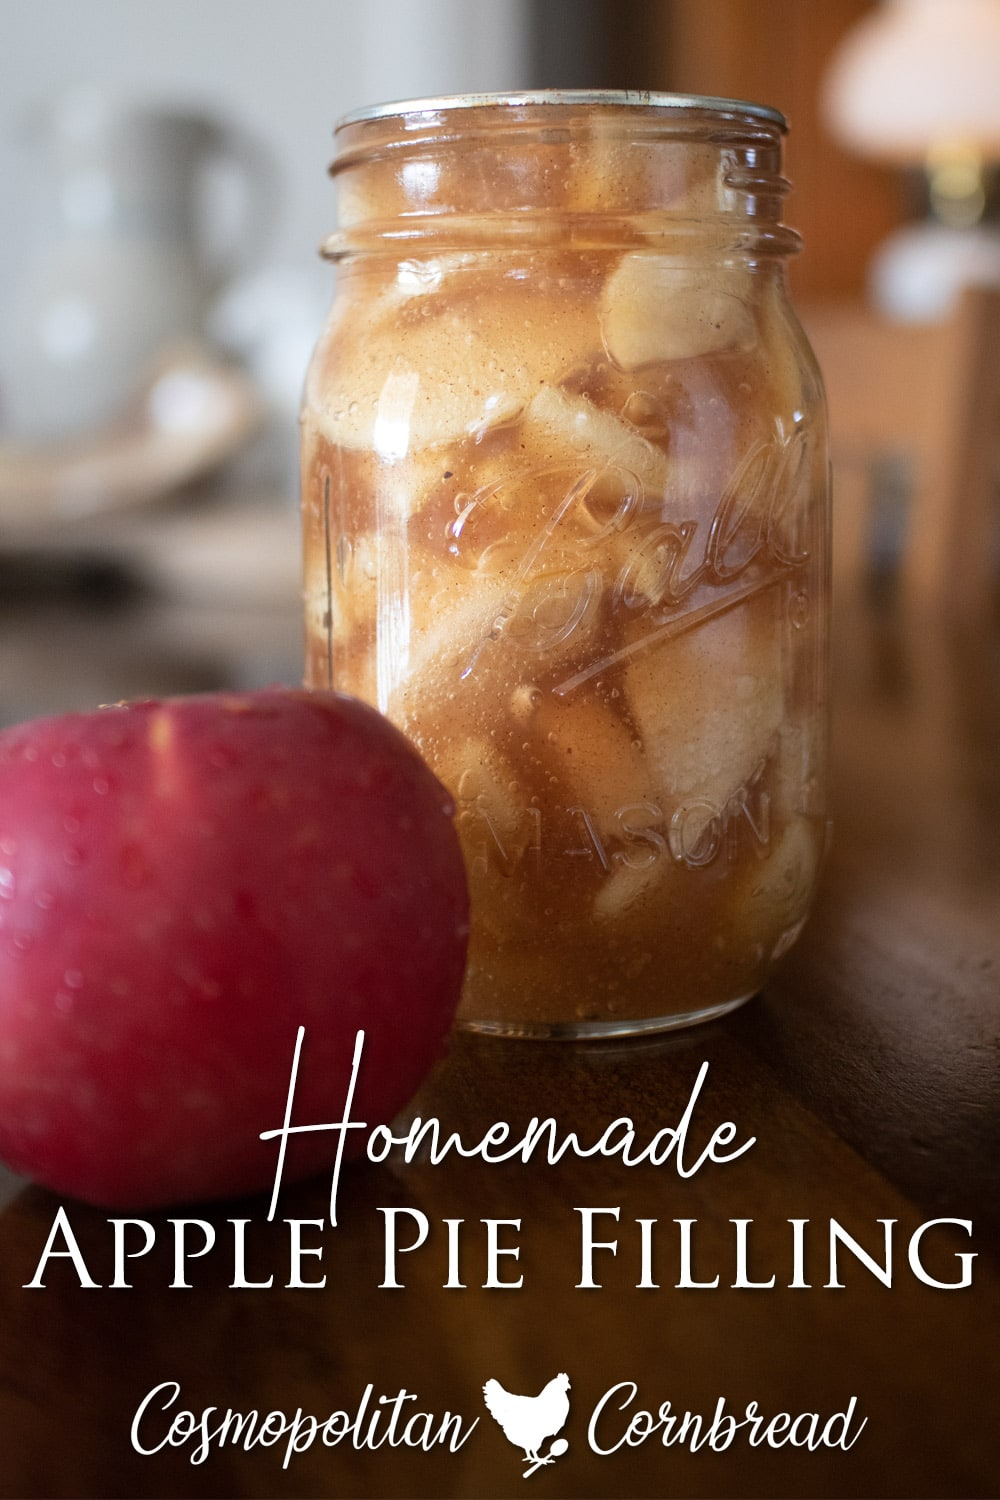 Homemade Apple Pie Filling is simple to make and a great shortcut for treats and desserts, right from your pantry.